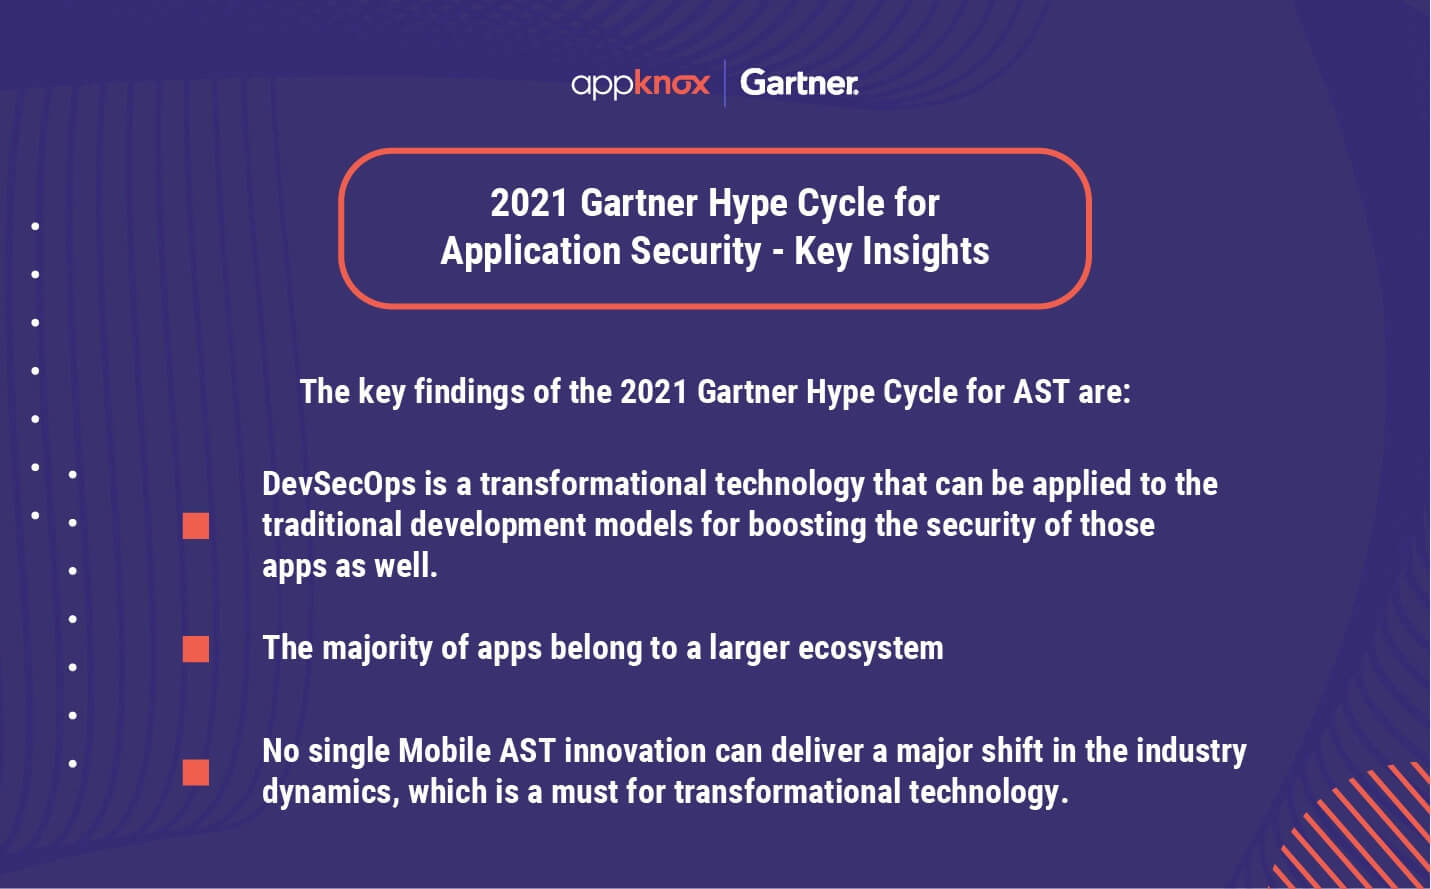 2021 Gartner Hype Cycle for Application Security - Key Insights